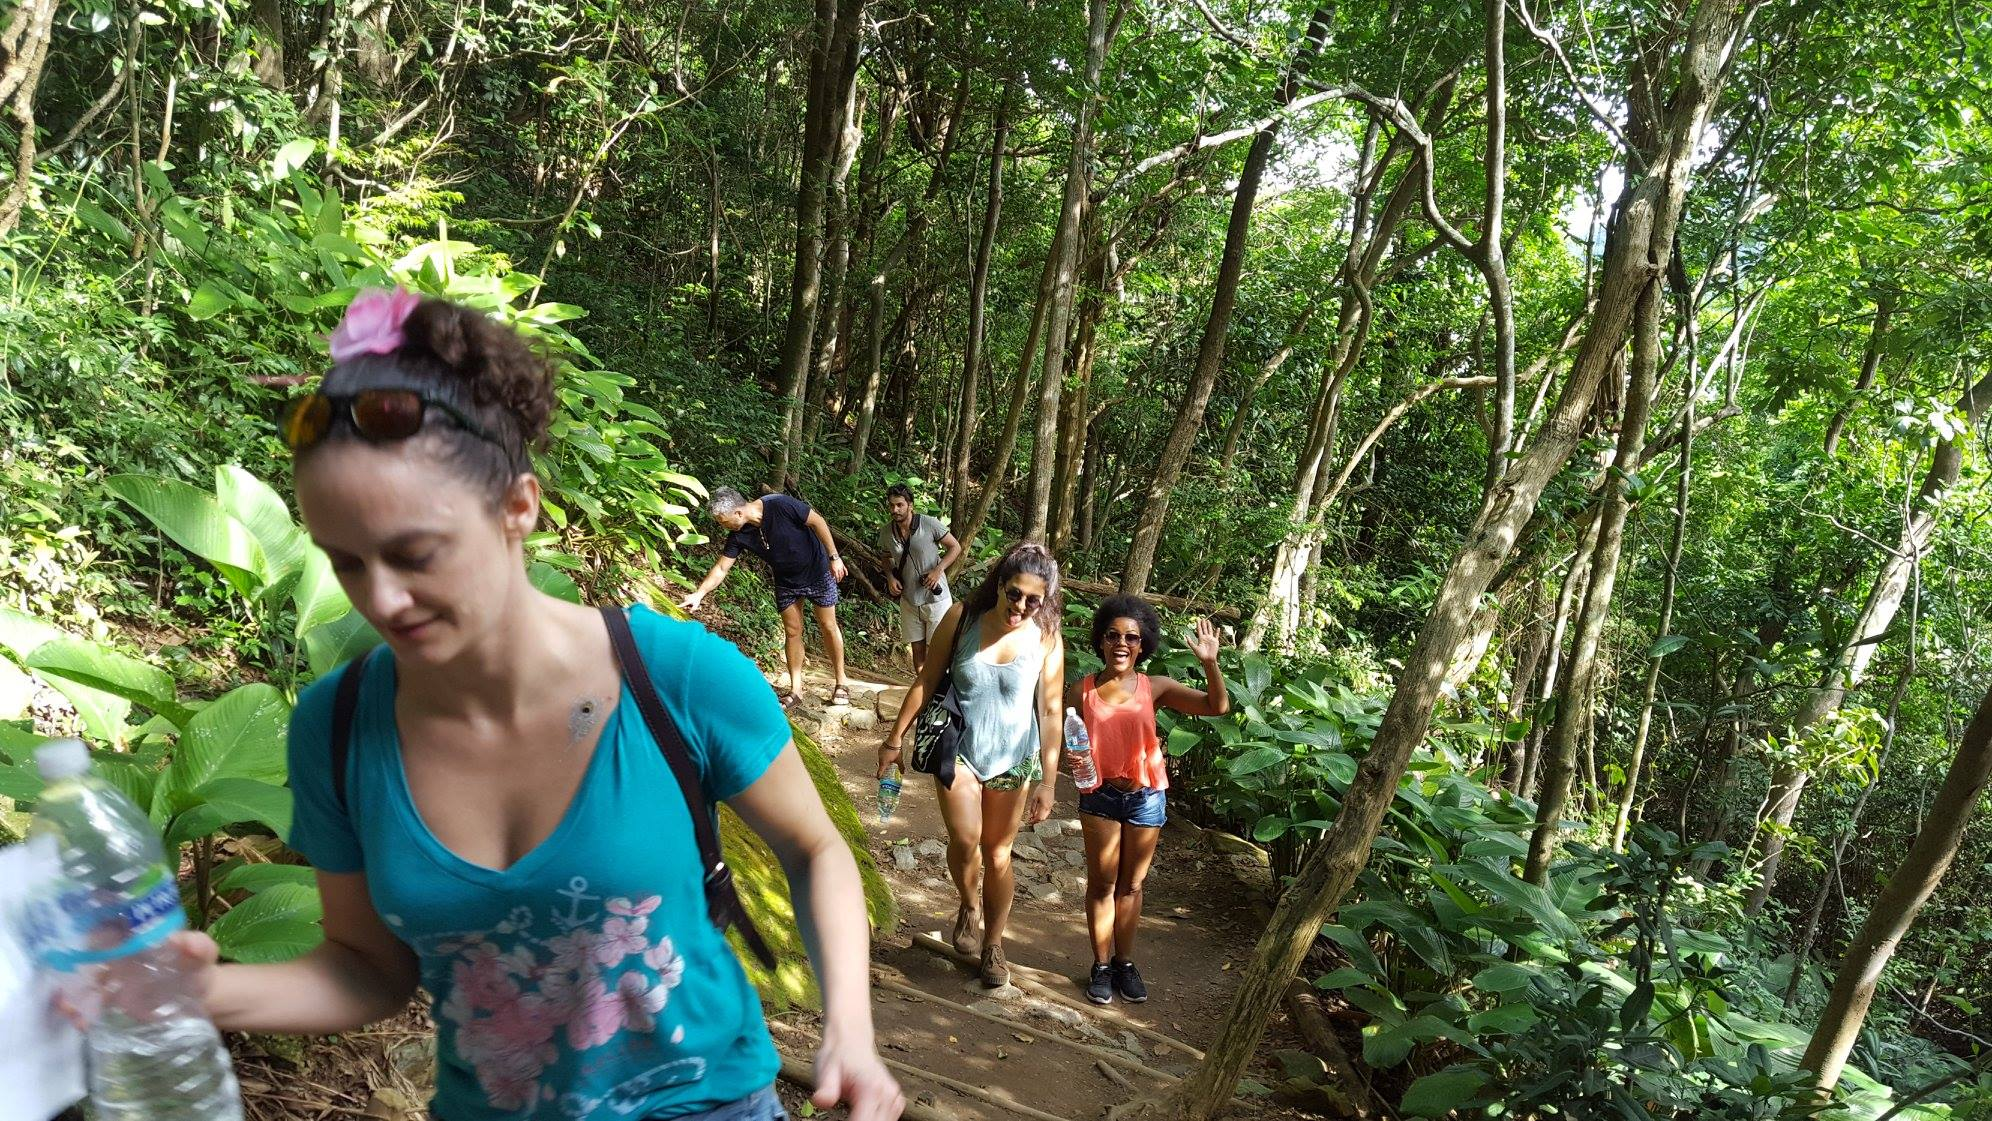 Hiking is the first step to our tour. Charmed by Sugarloaf. Foreigner students of portuguese hiking at Pão de Açúcar.